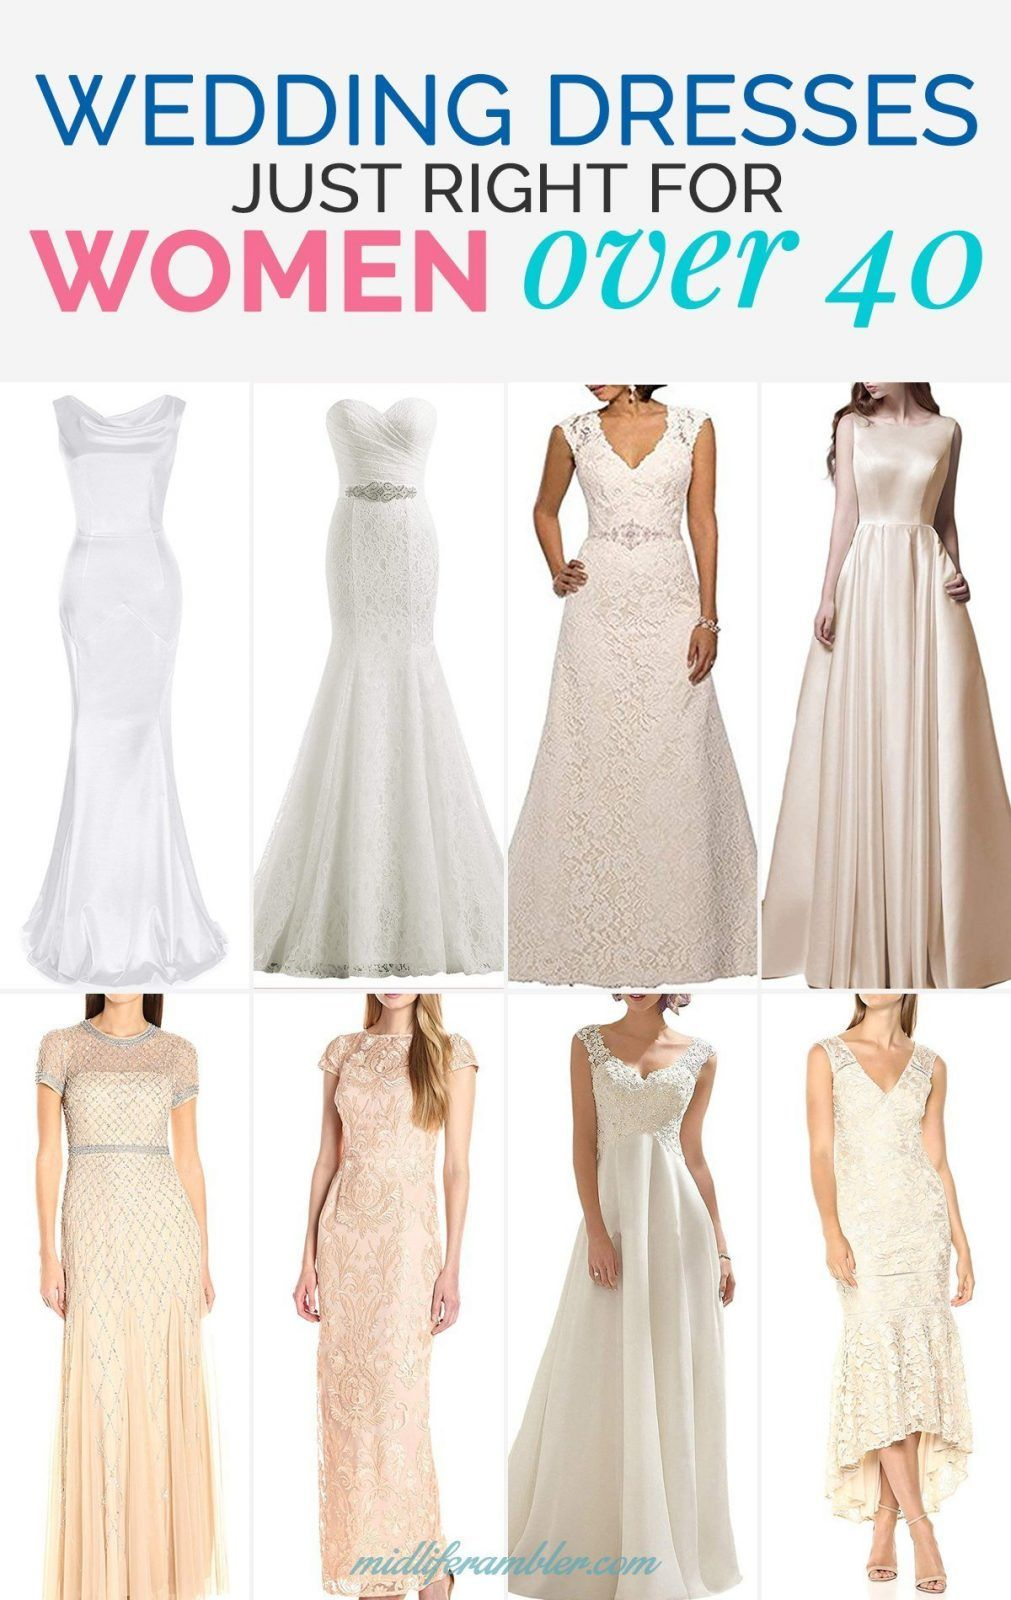 20 Wedding Dresses Perfect For The Over 40 Bride That You Can Get From Amazon In 2020 Older Bride Wedding Dress Over 40 Over 50 Wedding Dress